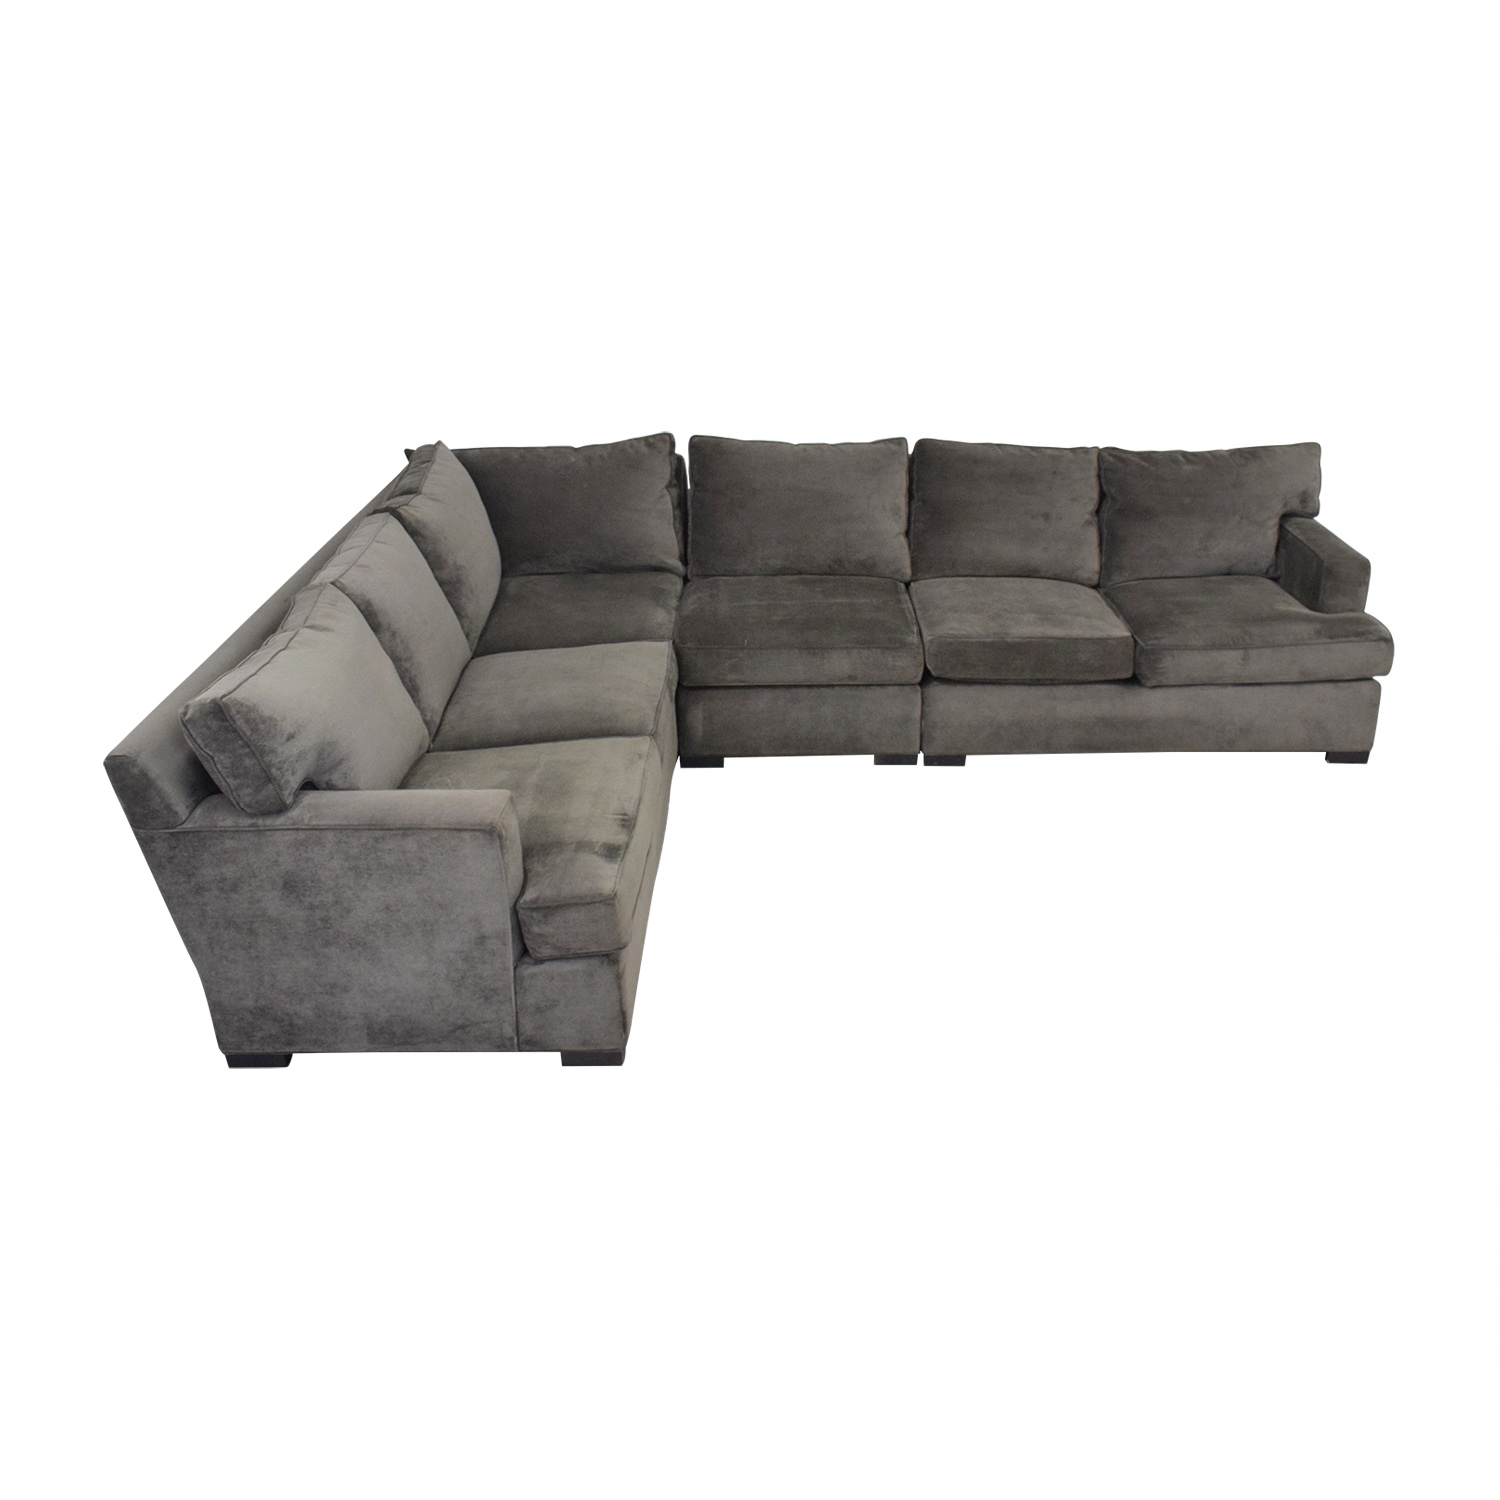 Arhaus Arhaus Dune Sectional Sofa second hand